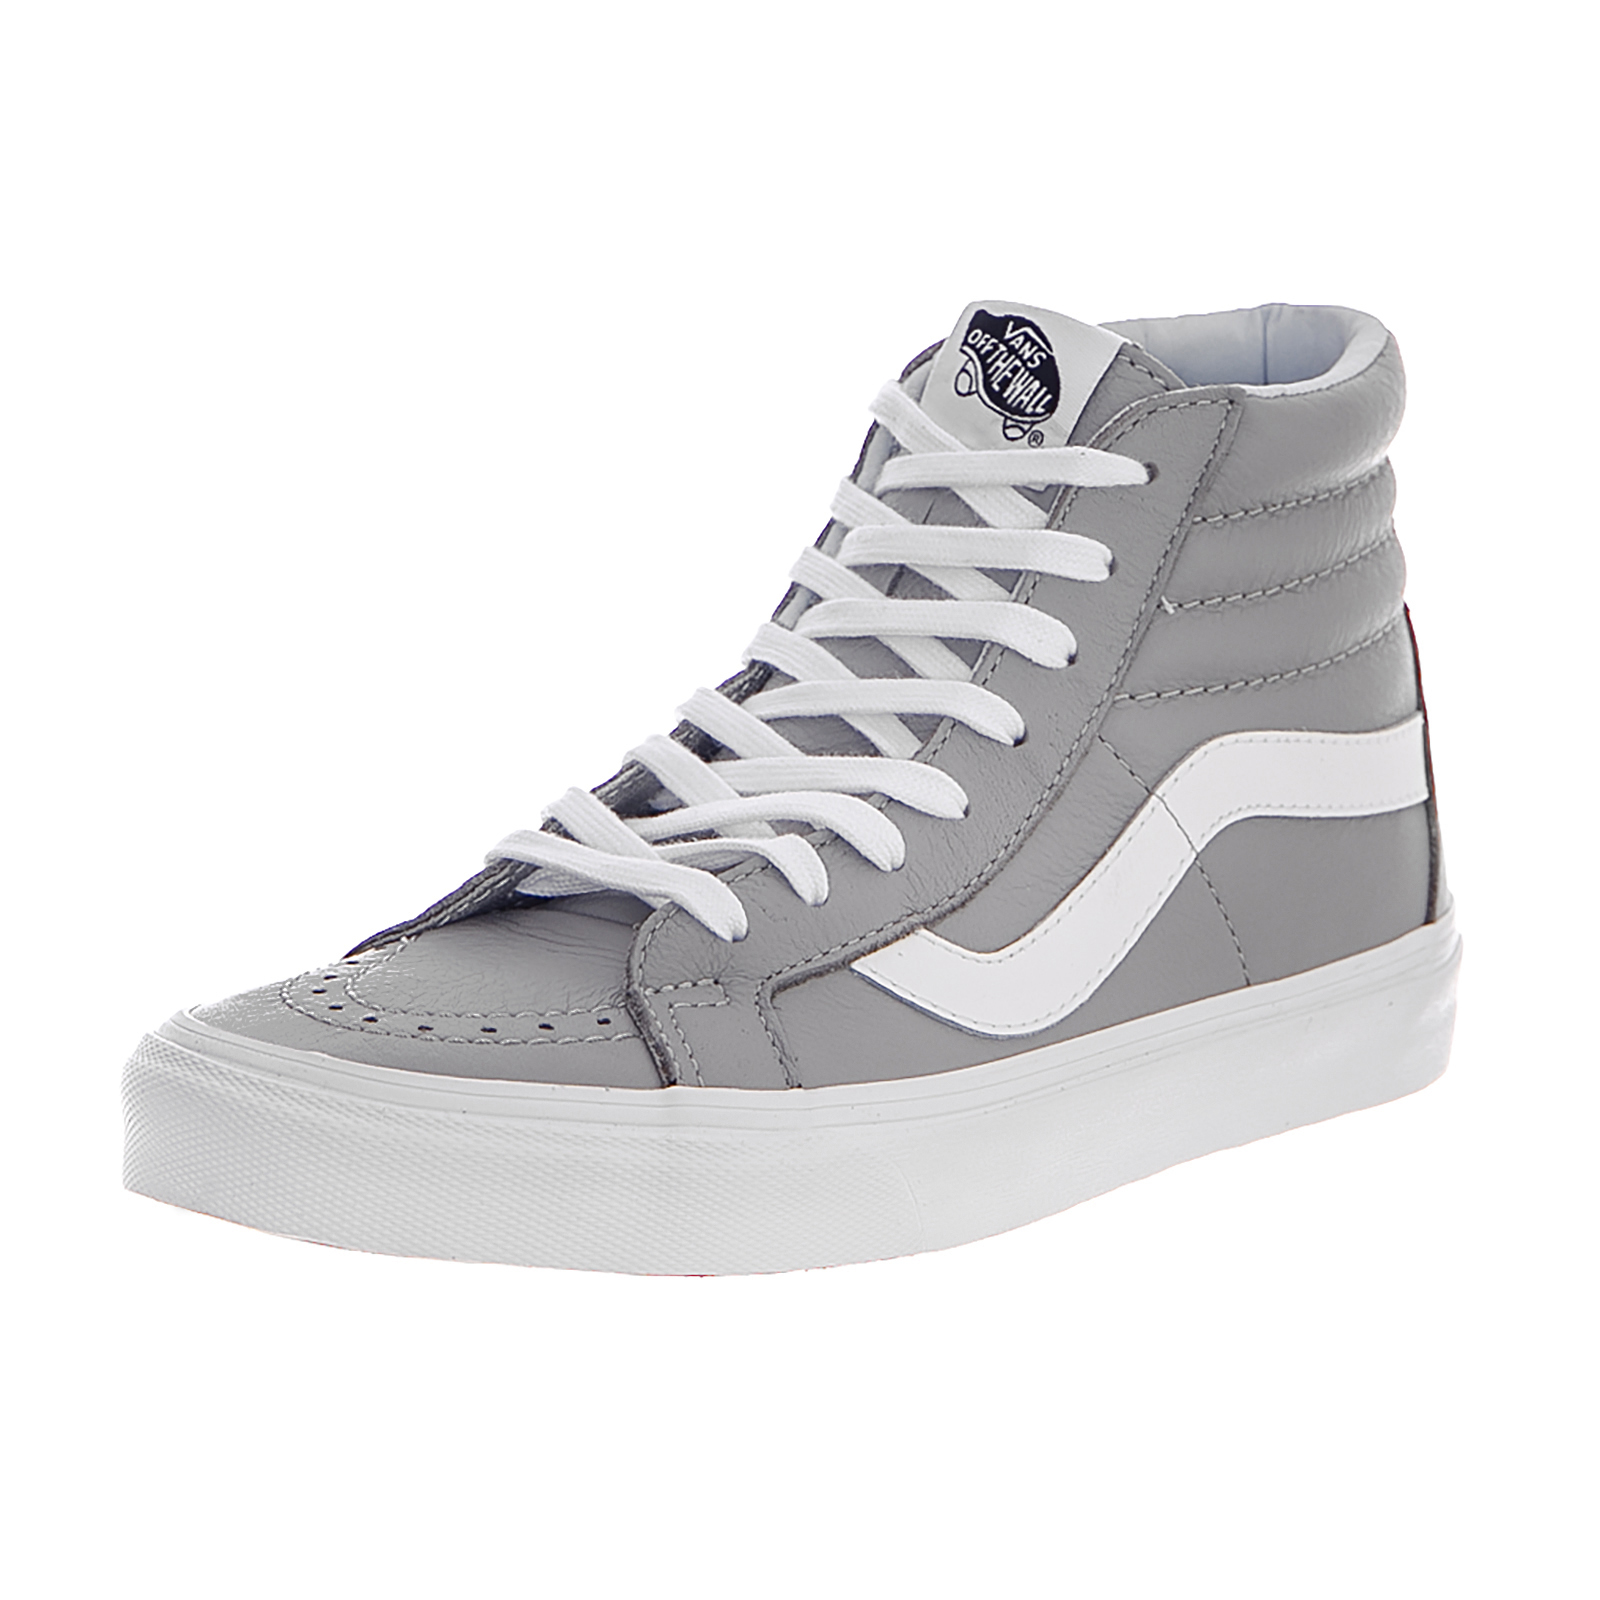 4be6c7b44249e0 Vans Sneakers Ua Sk8-Hi Reissue (Leather) Oxford Drizzle Grey